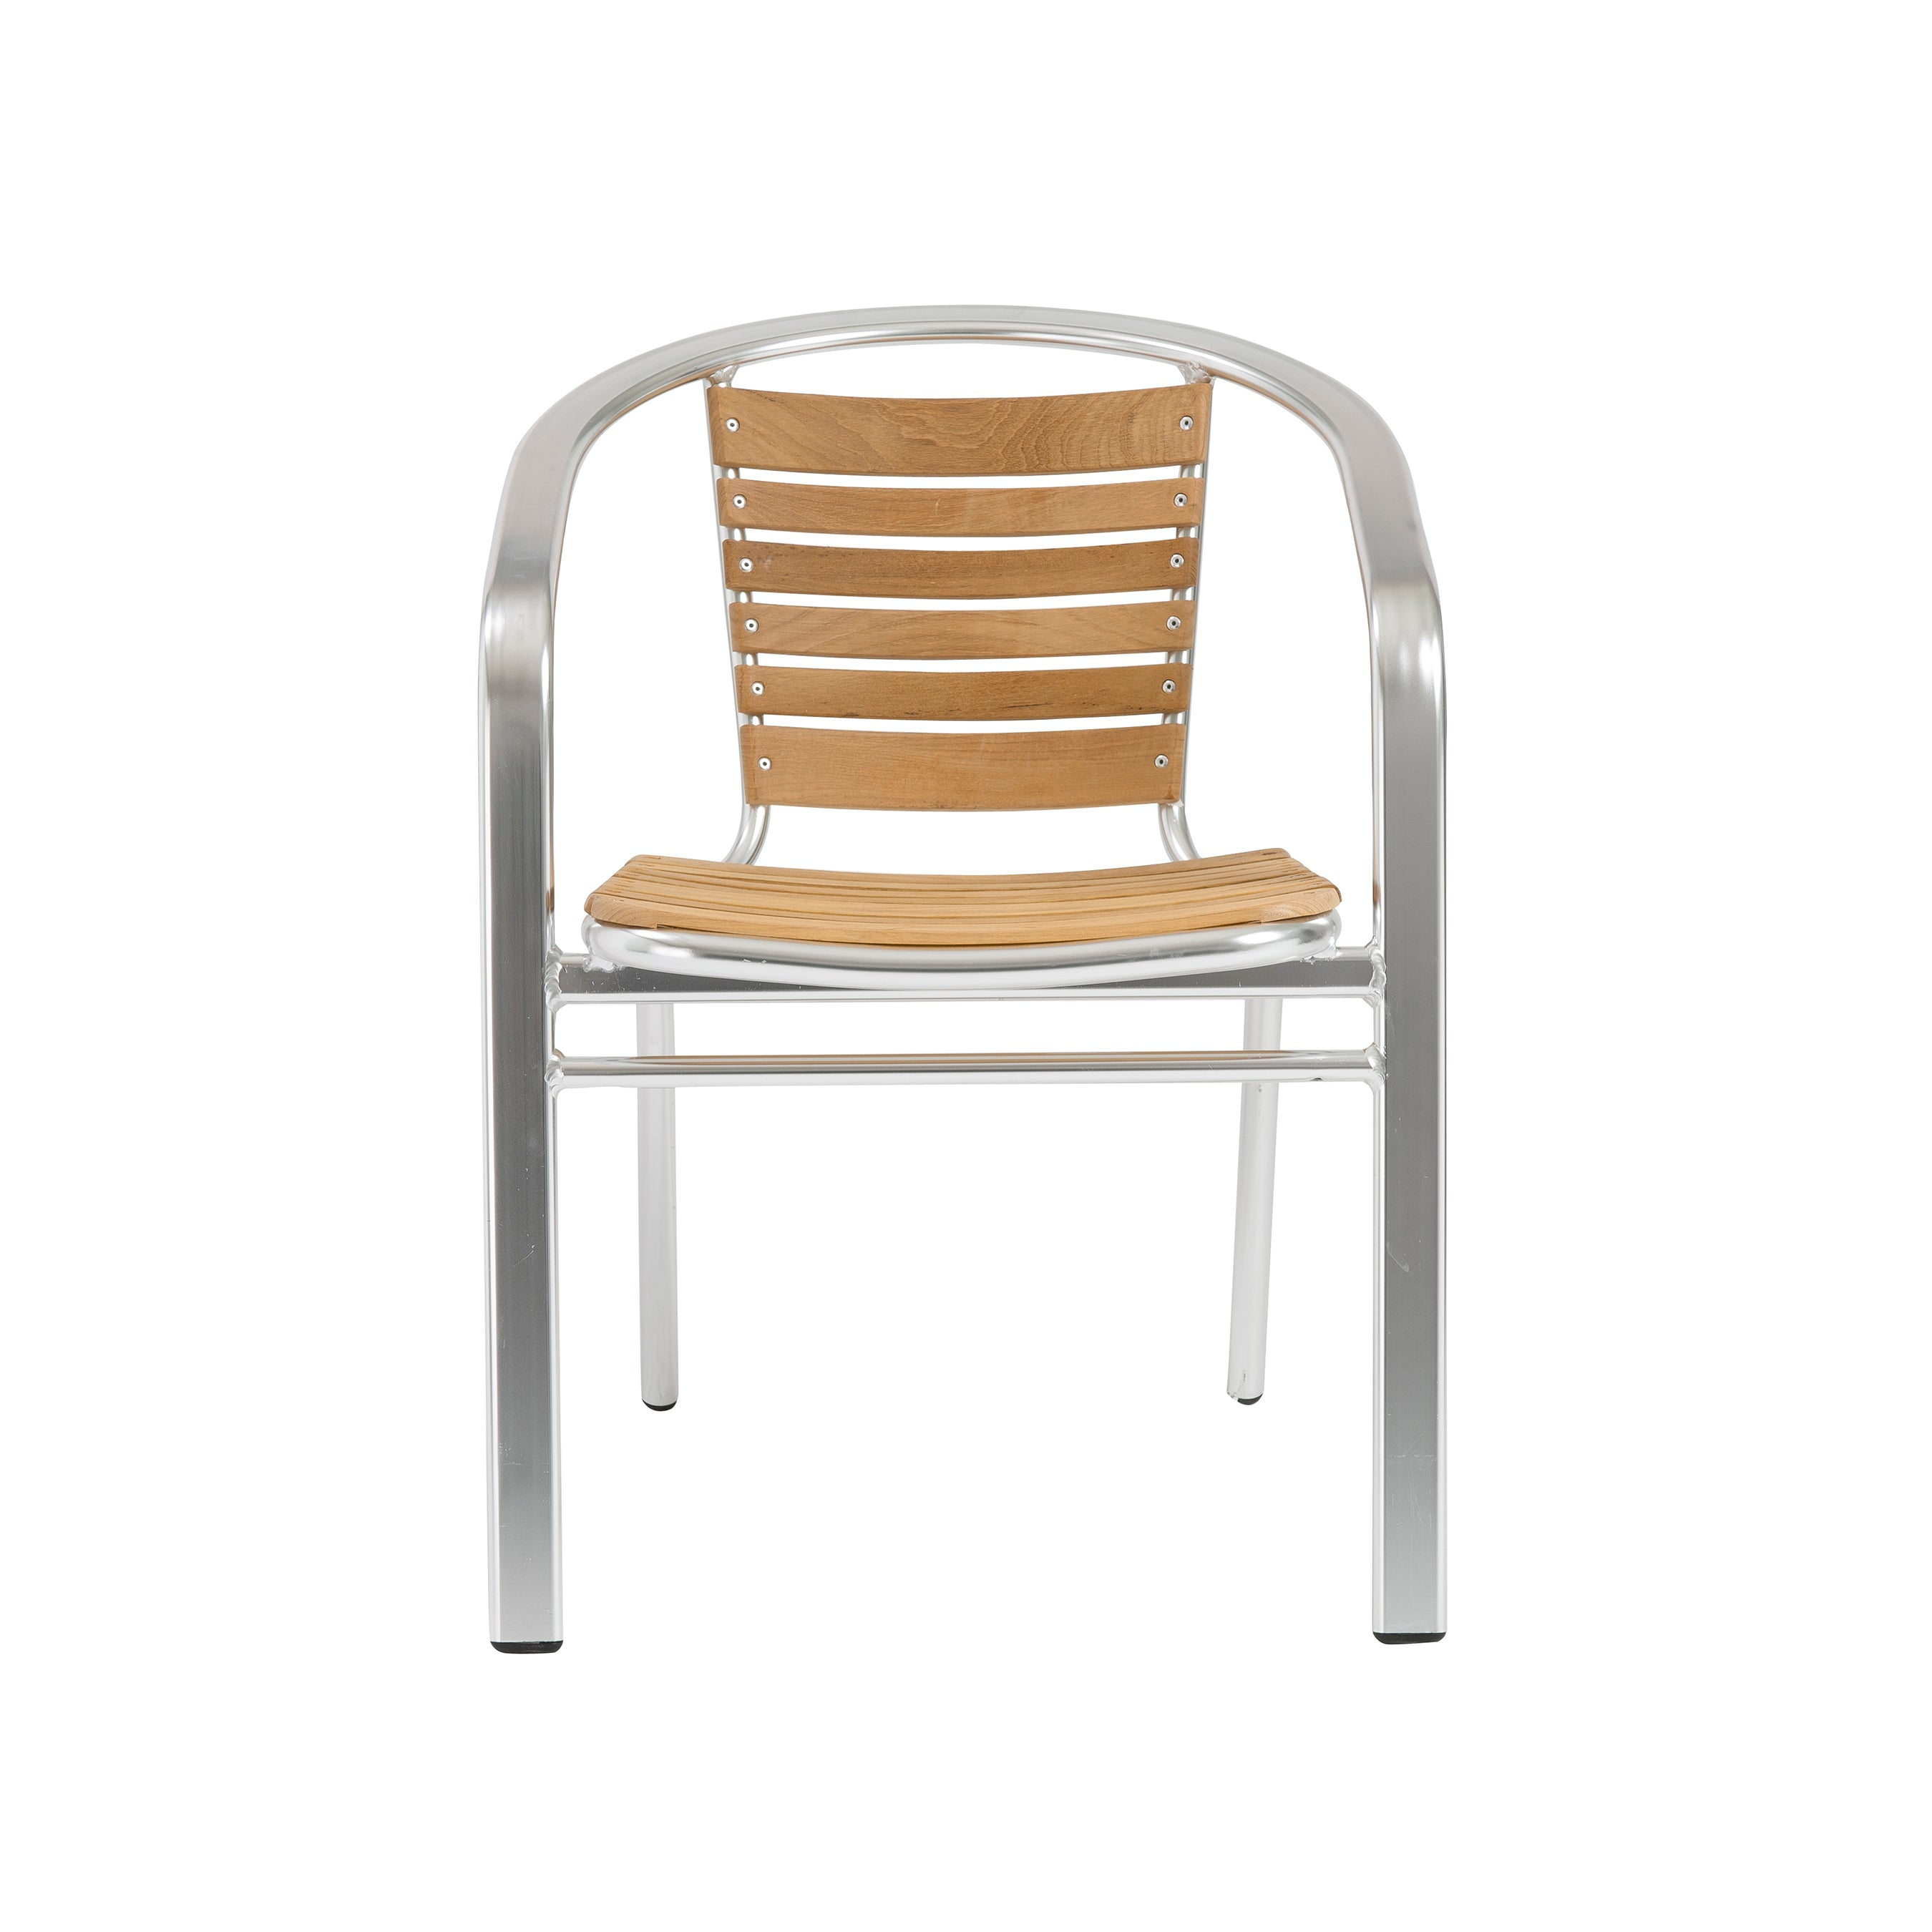 Aluminum and Teak Guest or Conference Chairs w/ Casual Feel (Set of 6)